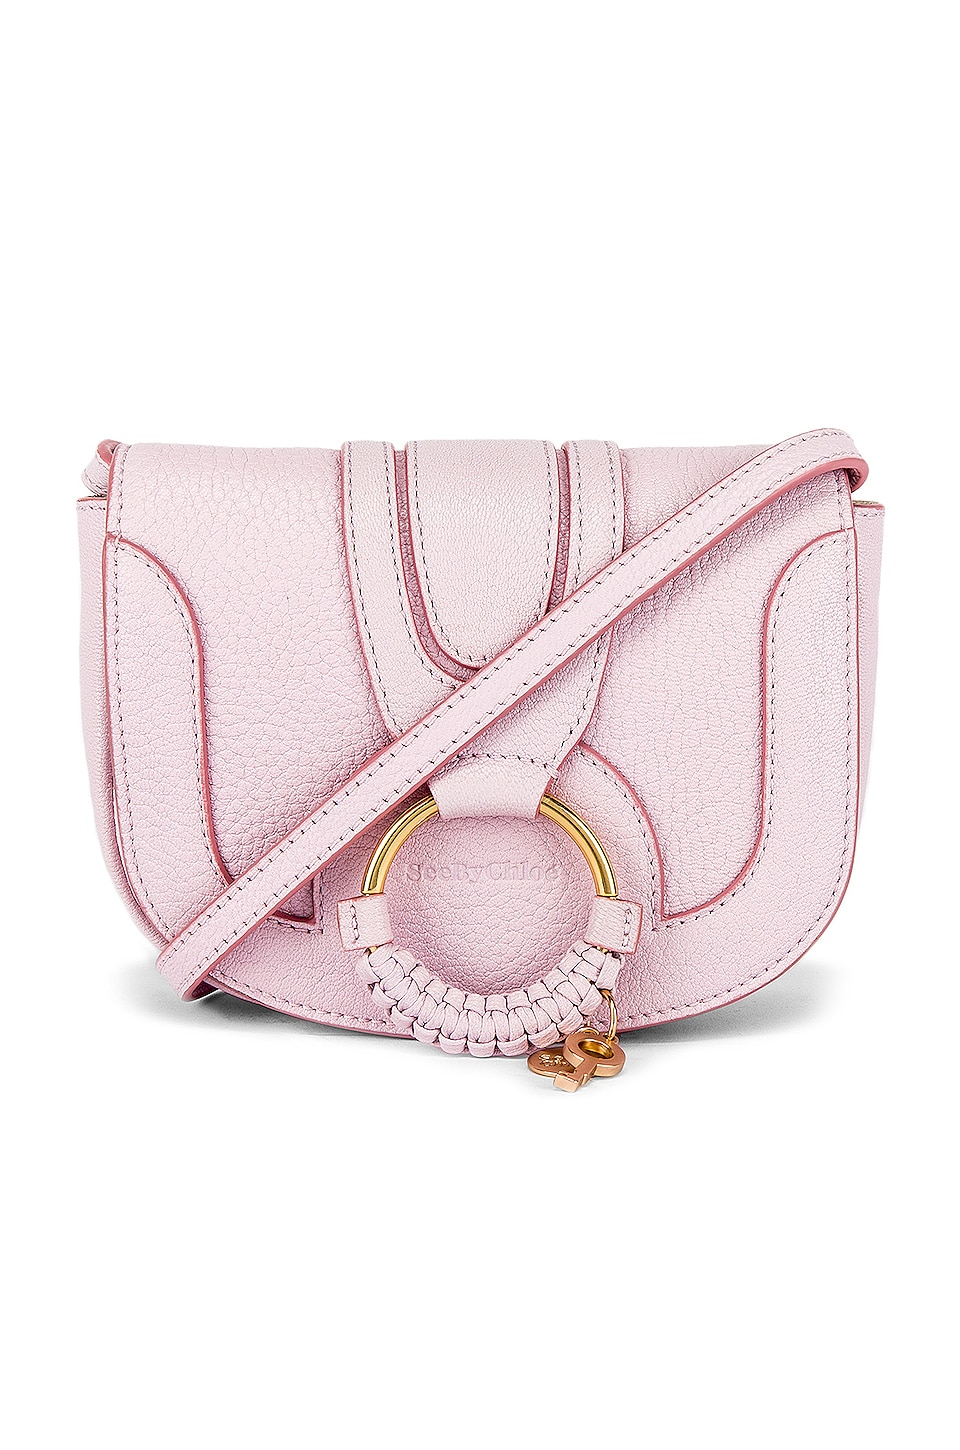 See By Chloe Mini Hana Crossbody in Smooth Pink